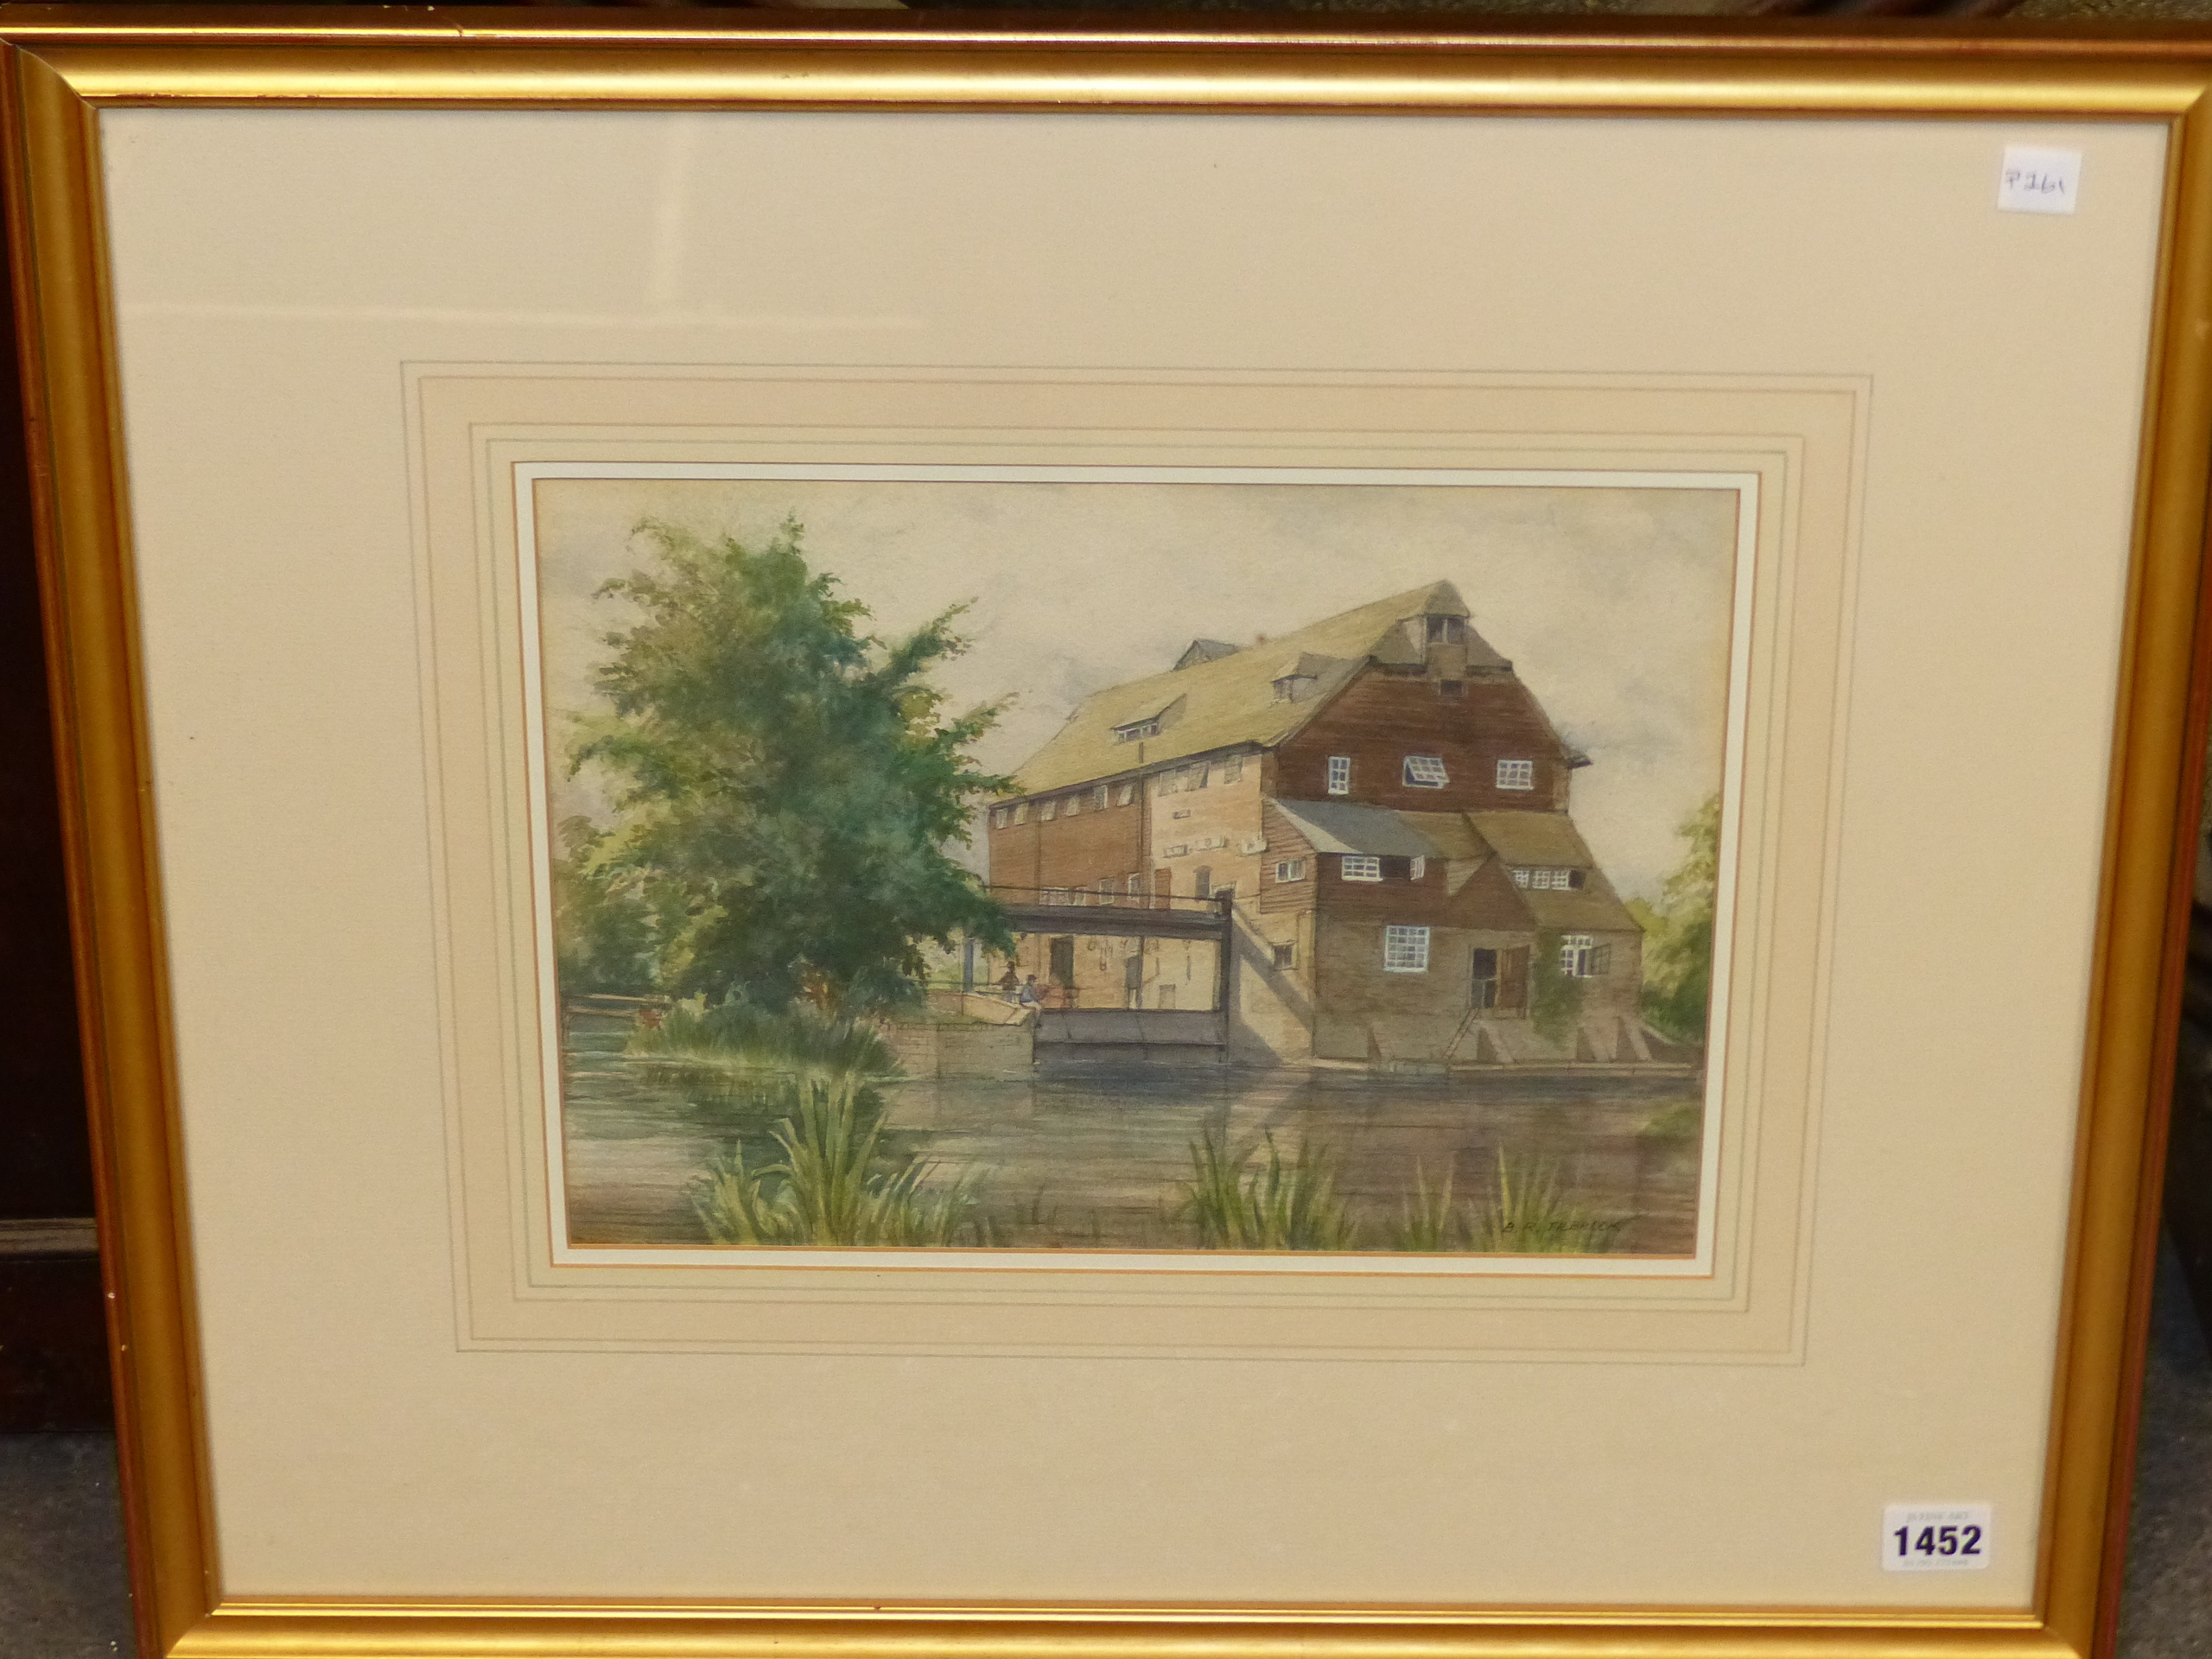 B.R TILBROOK (20th CENTURY SCHOOL). THE OLD MILL. SIGNED, WATERCOLOUR 23 x 32cms. - Image 4 of 5